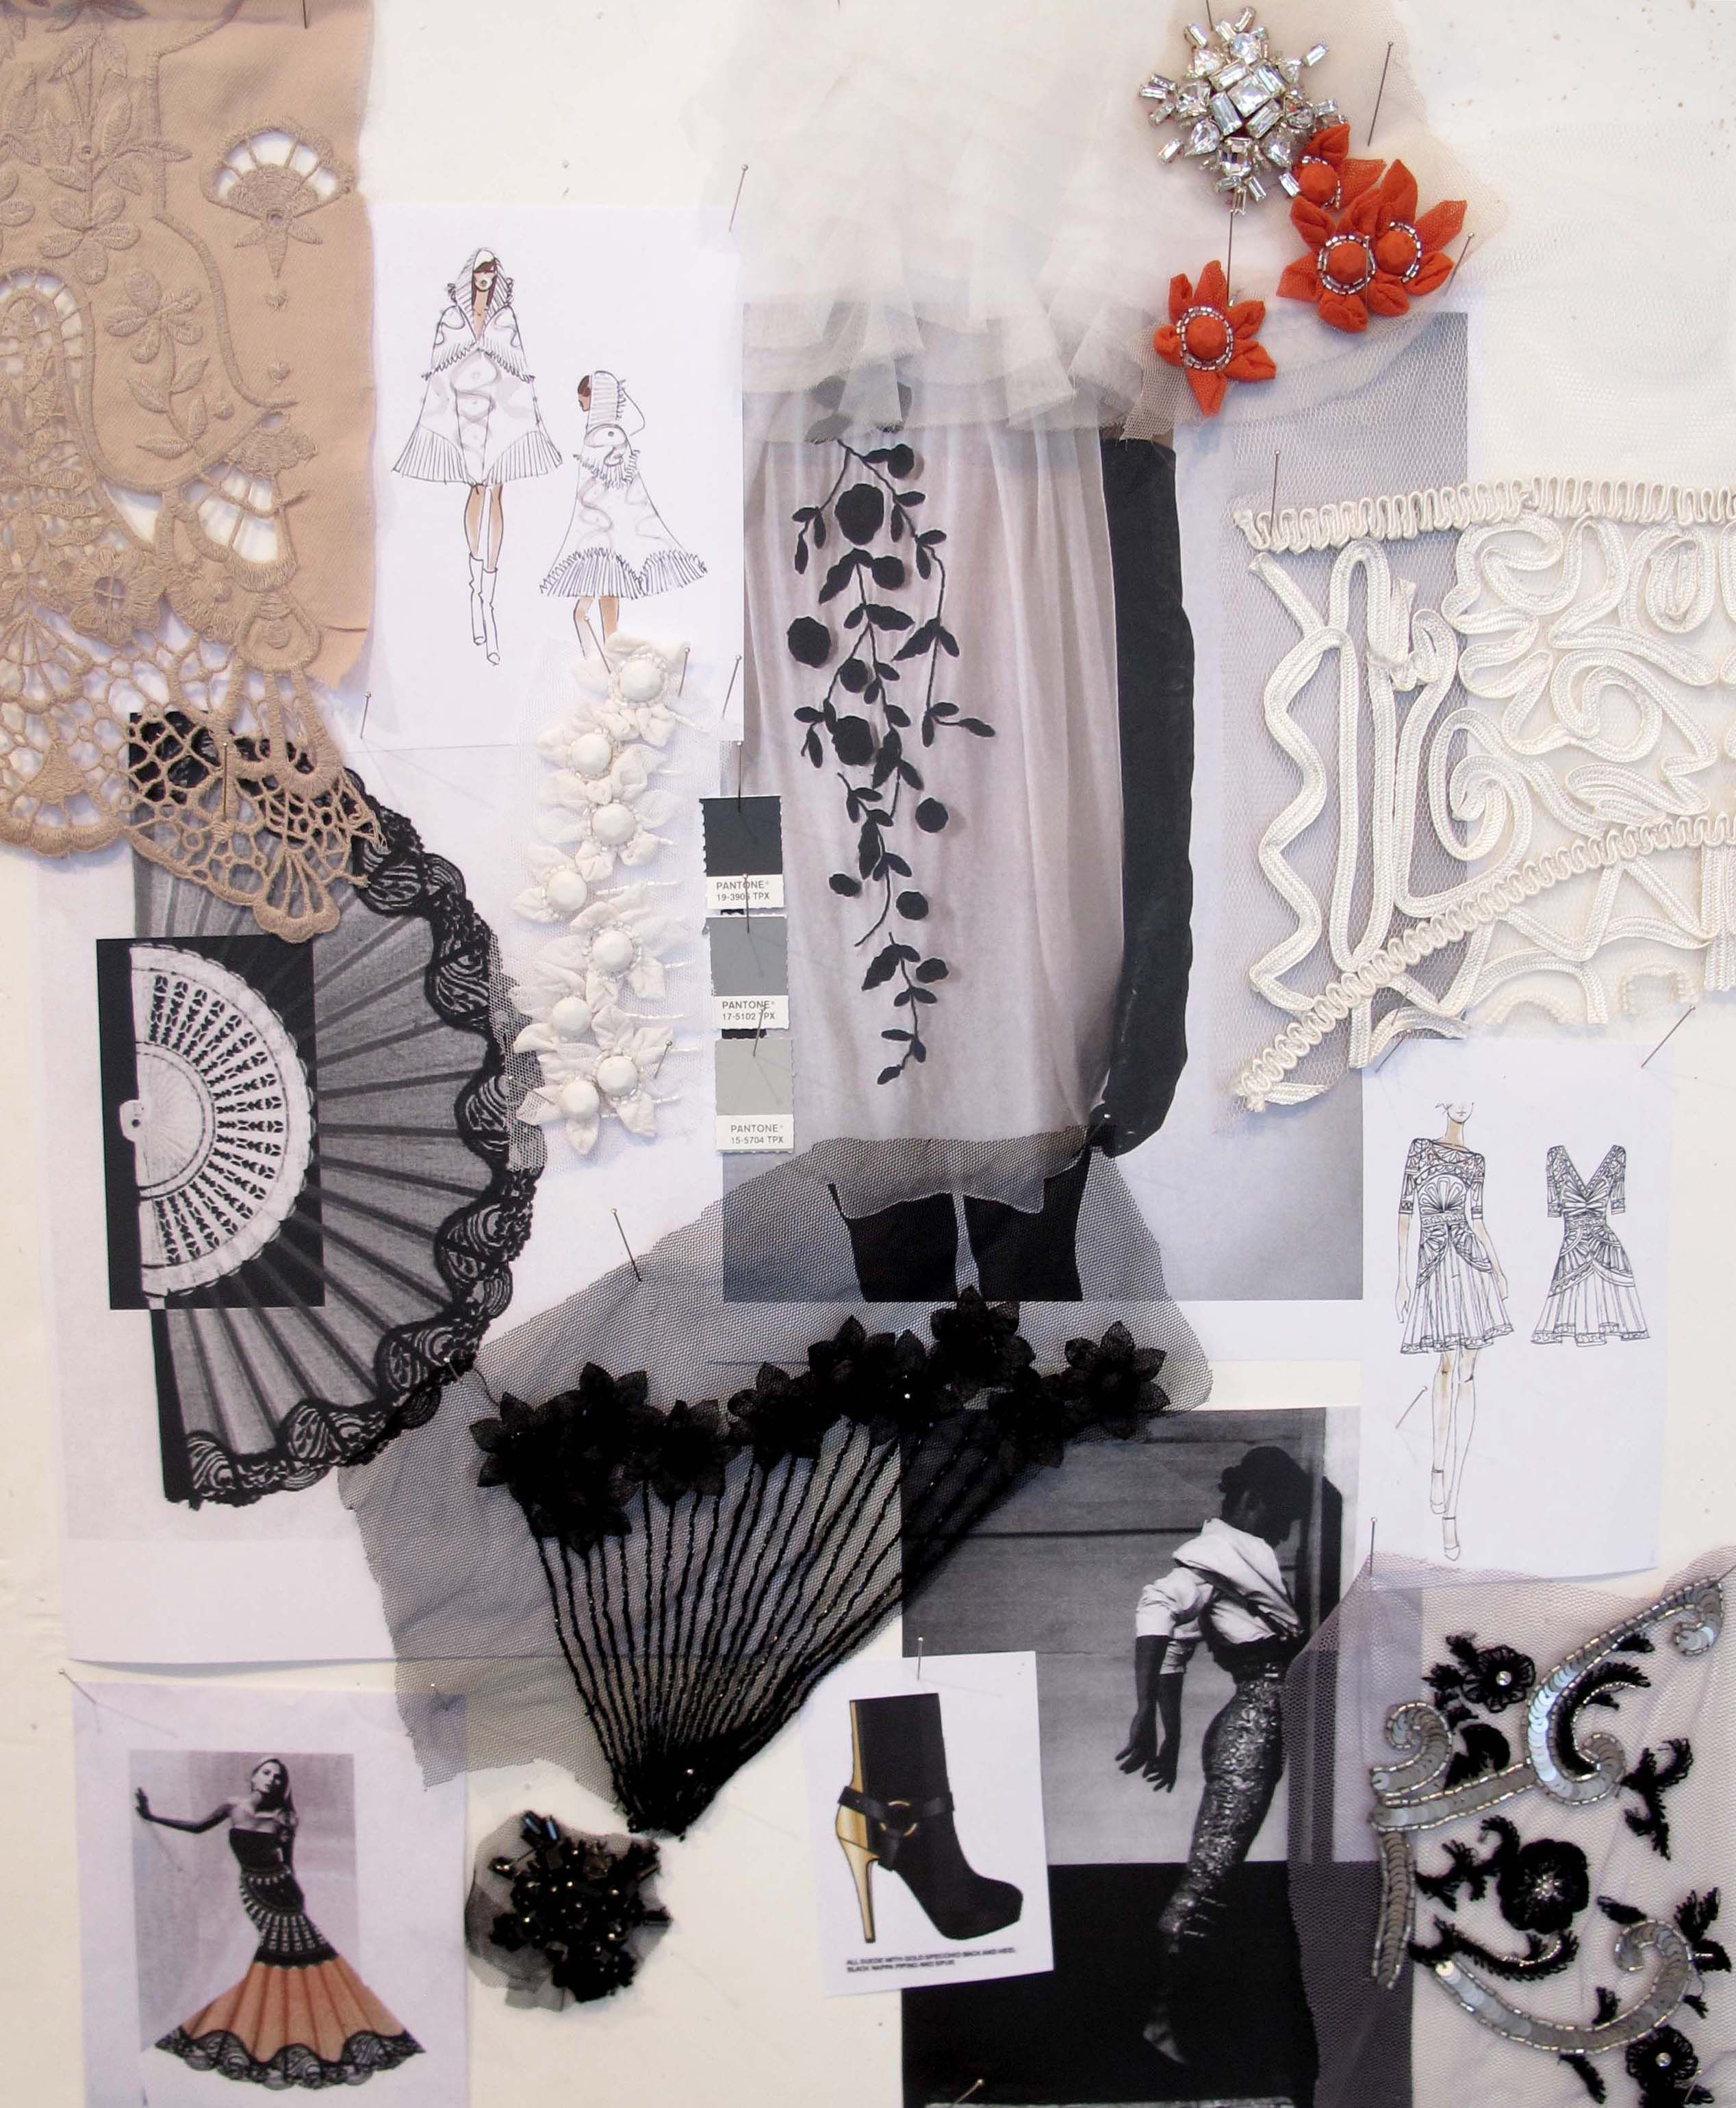 Temperley London Aw11 Moodboard Ideas Collage Portfolio De Moda Diseno De Indumentaria